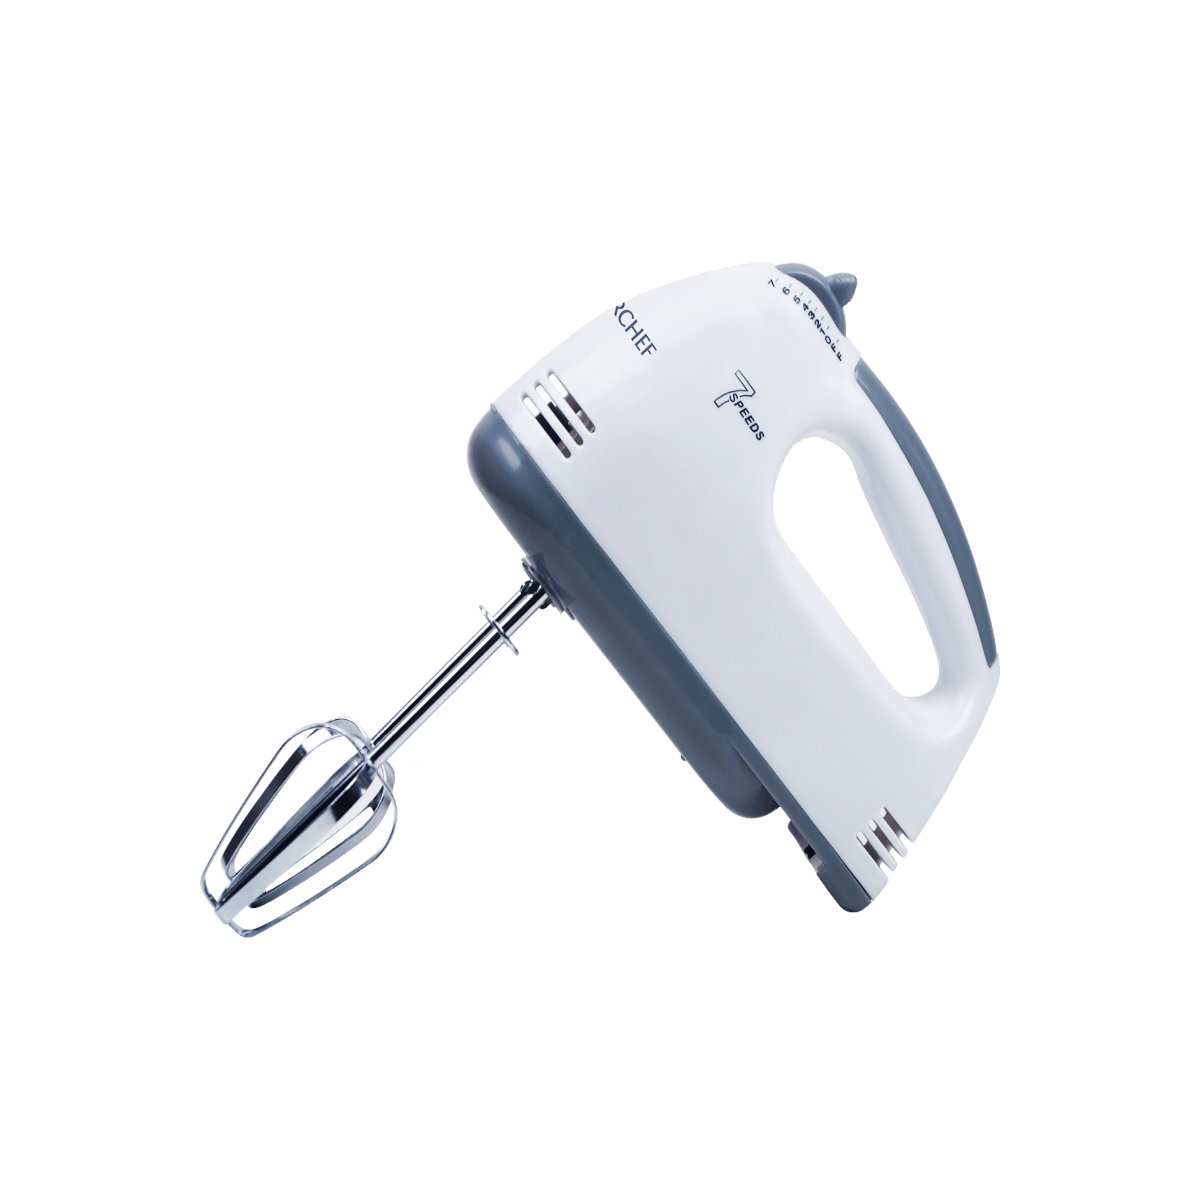 Acura Hand Mixer, 7 Speed Setting, 120W